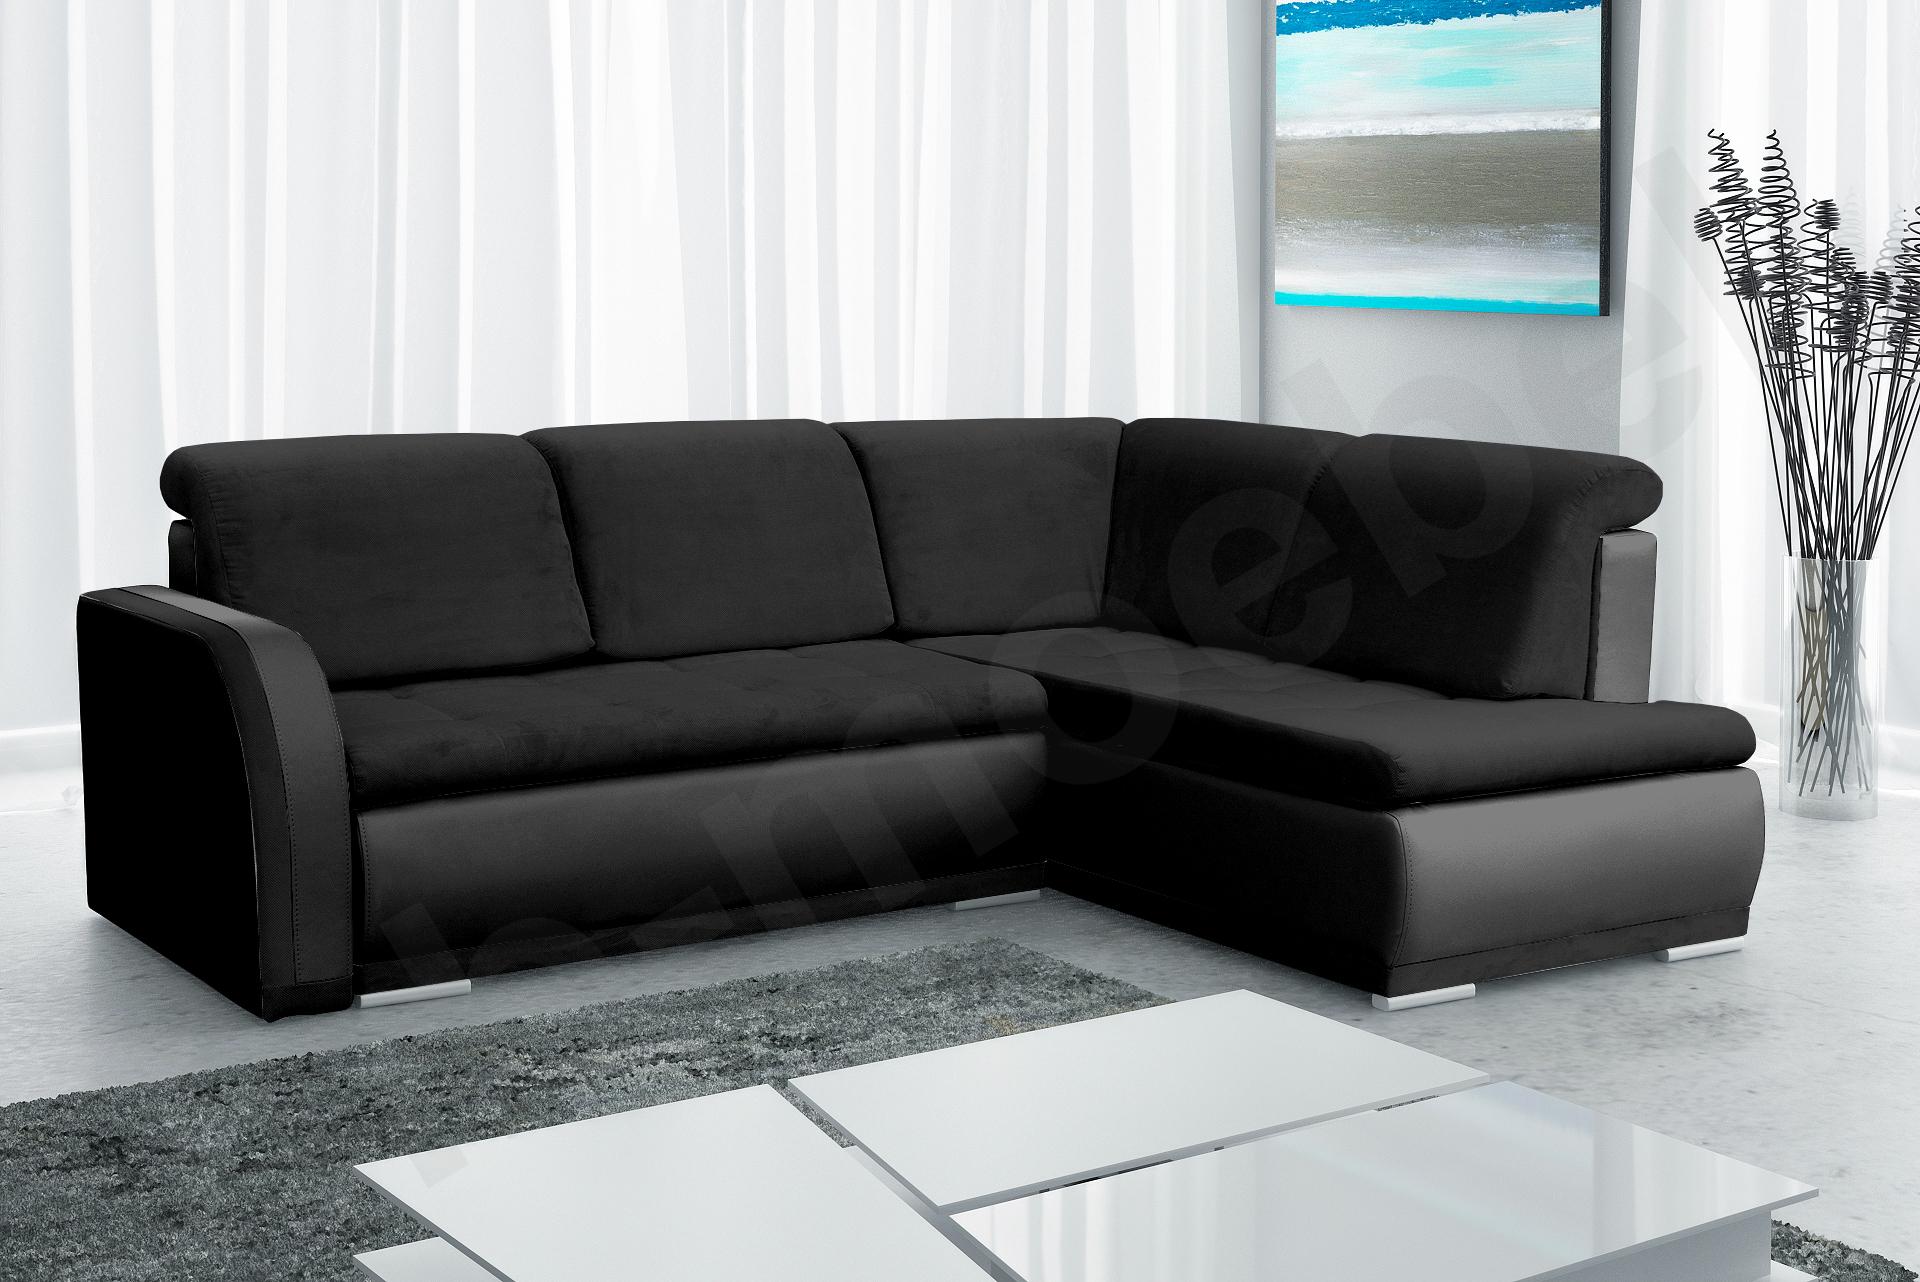 moderne ecksofa sofa wohnlandschaft sofagarnitur wohnzimmer xxl schwarz vero ii ebay. Black Bedroom Furniture Sets. Home Design Ideas